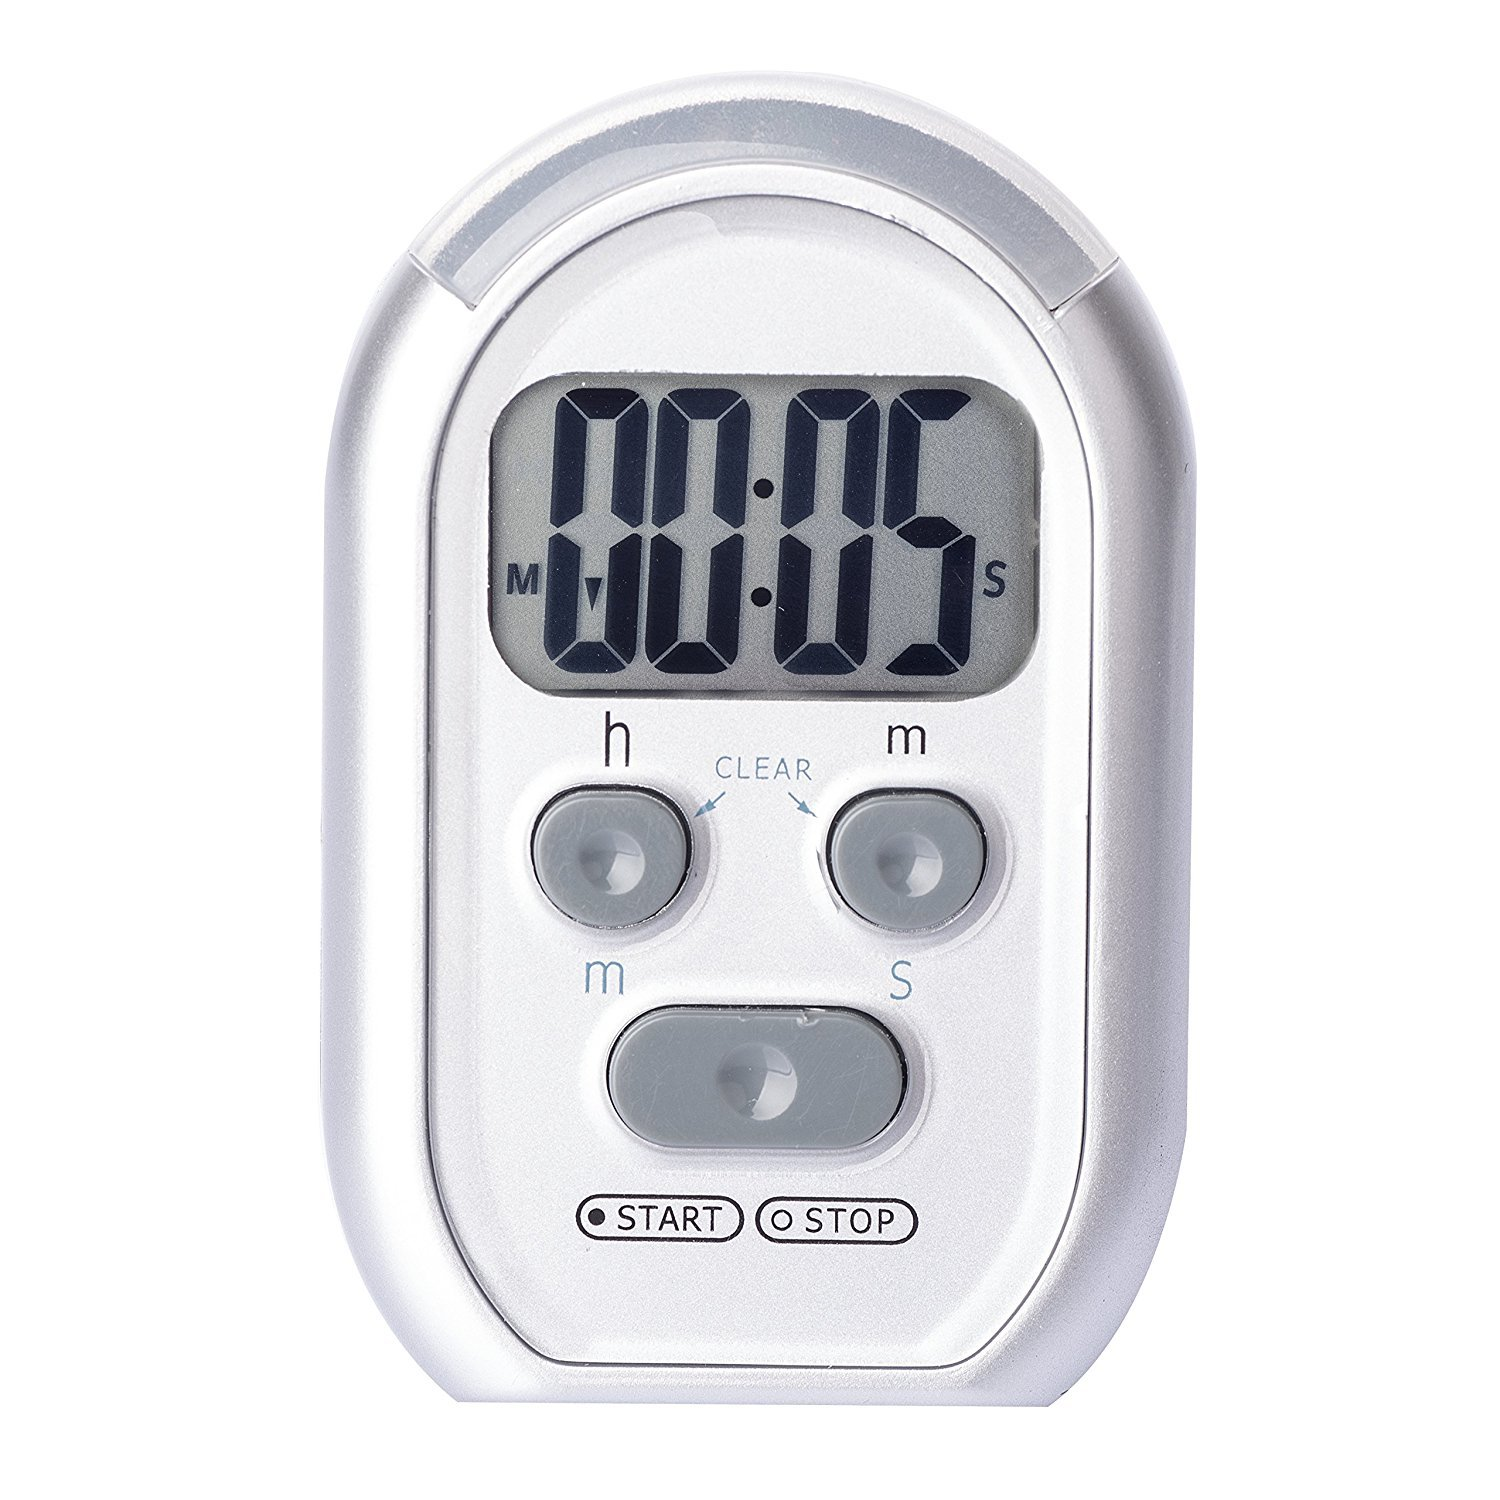 x wlang 3 in 1 alerts timer 1013 with vibration beep